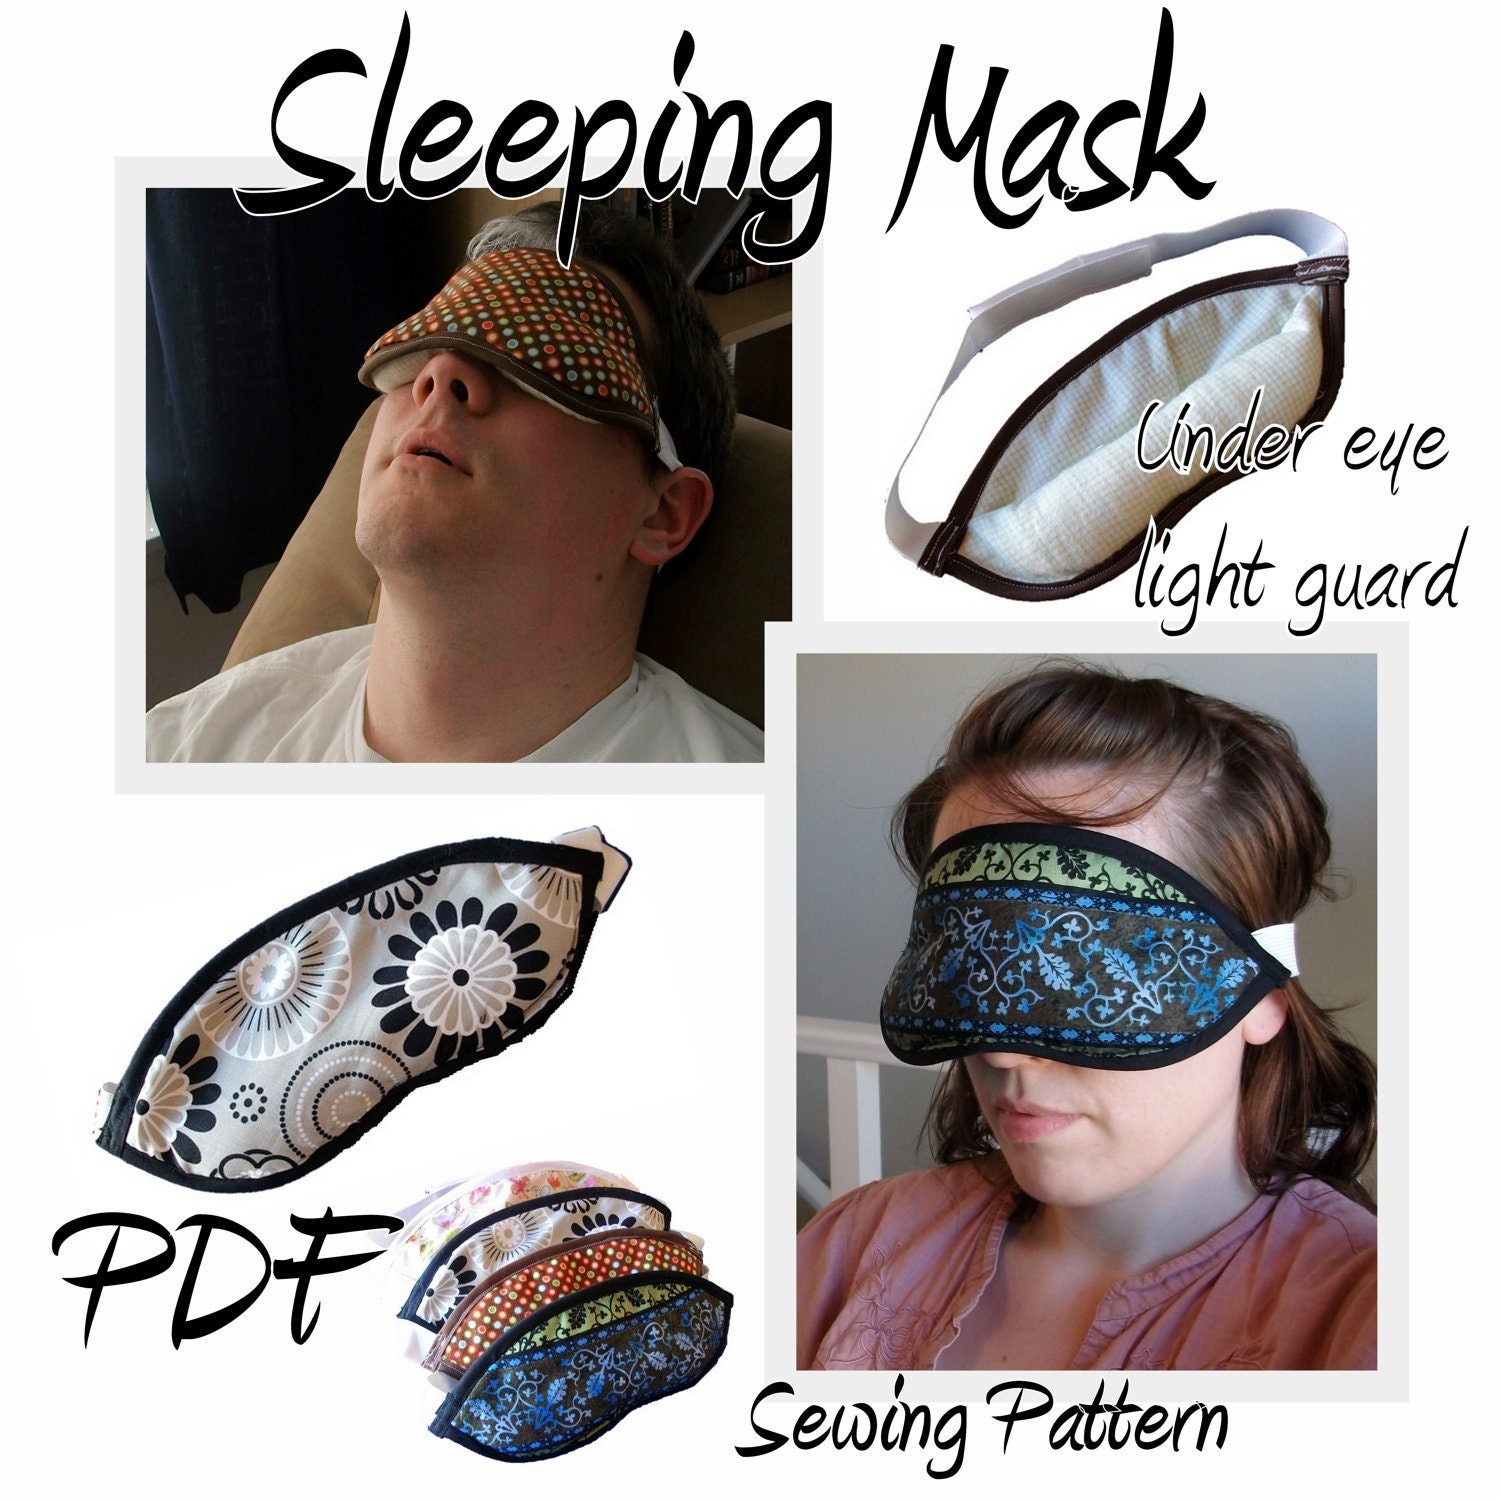 optase eye mask instructions